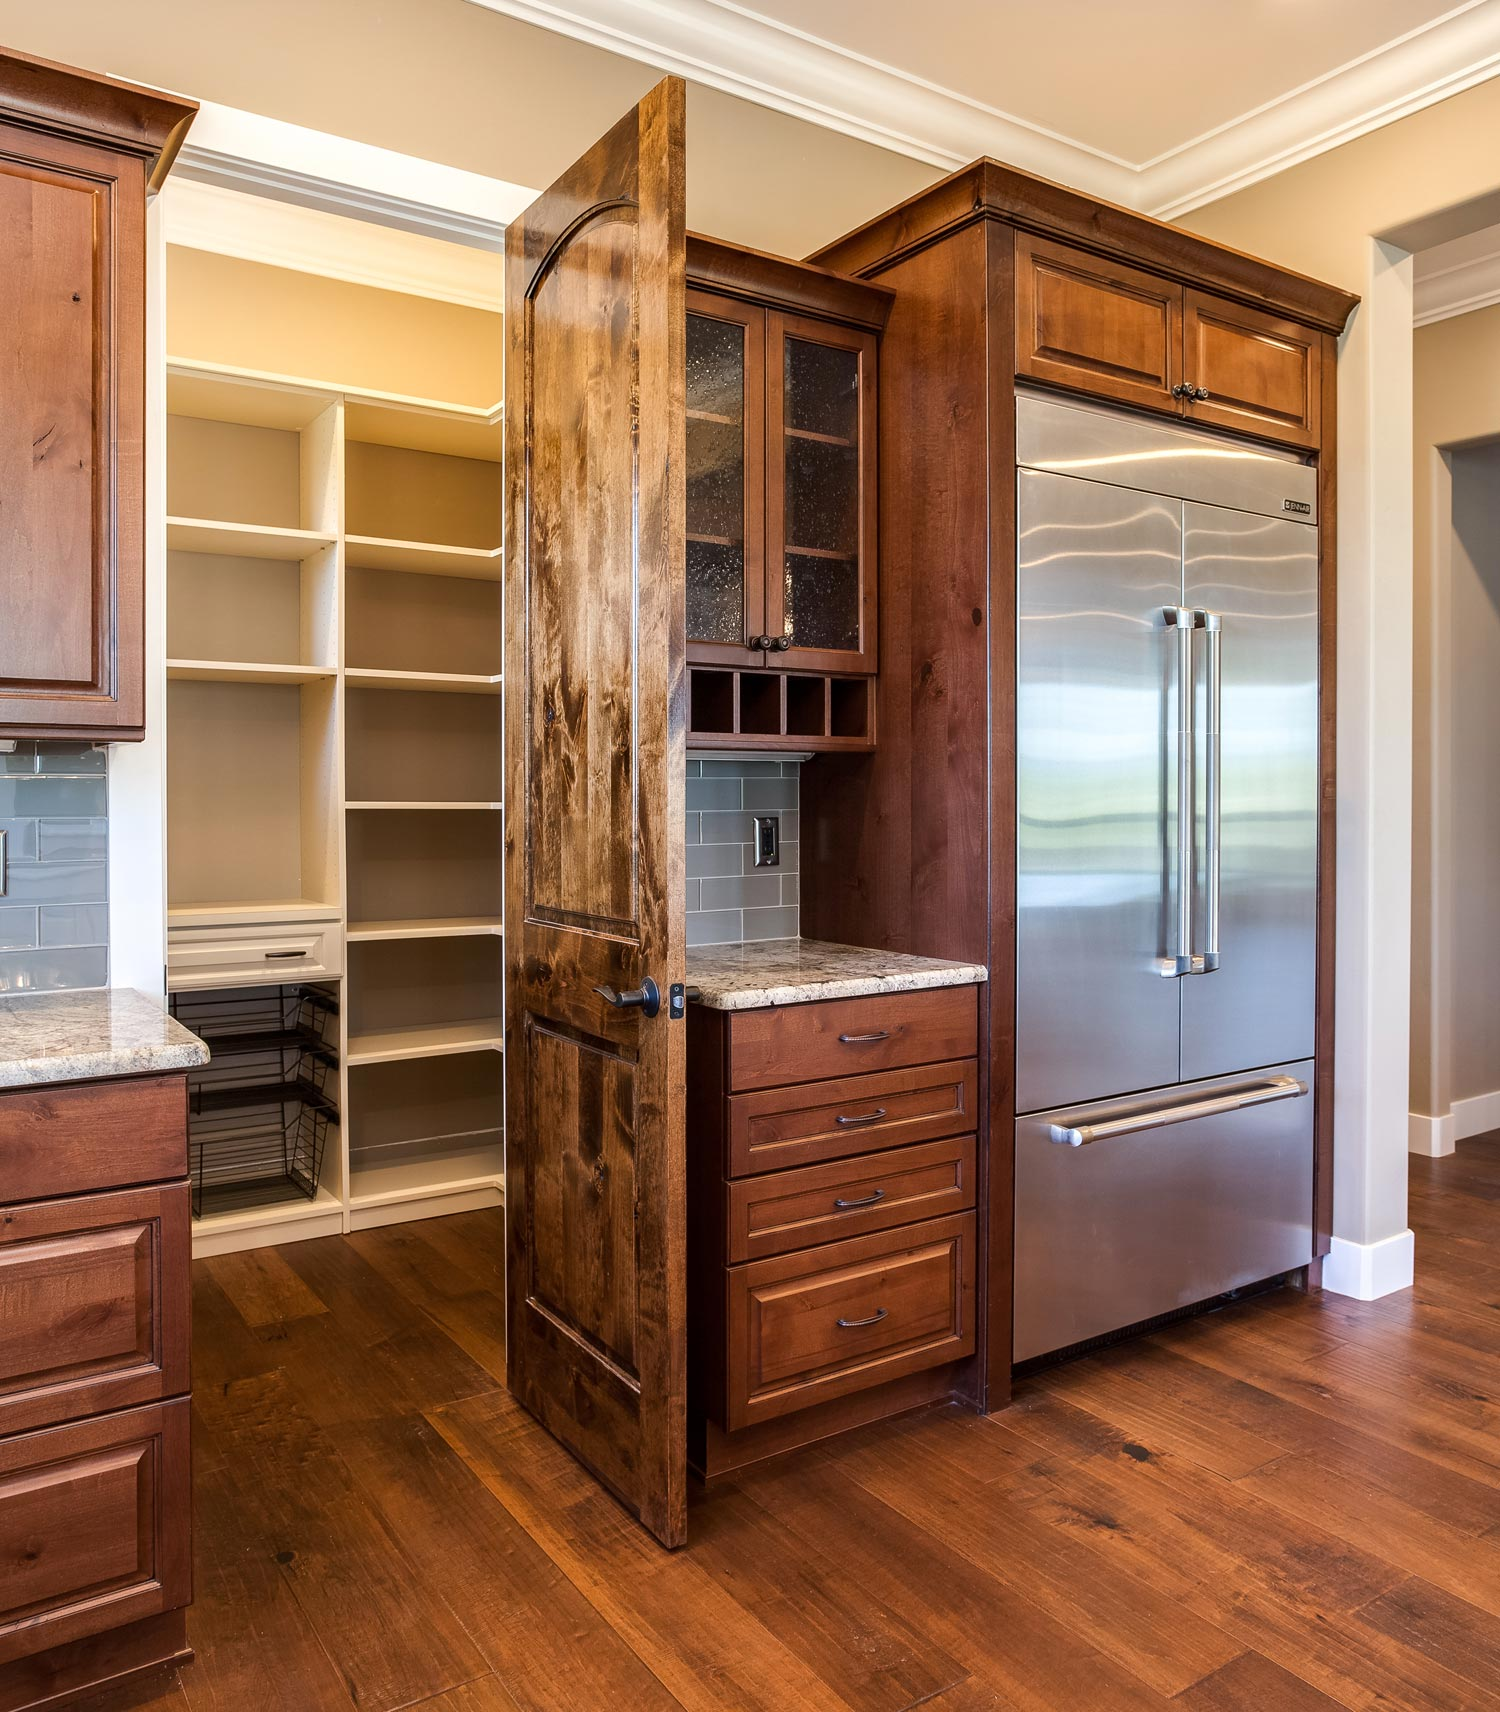 Kitchen Cabinets Or Open Shelving We Asked An Expert For: New Center Island Kitchen Design In Castle Rock